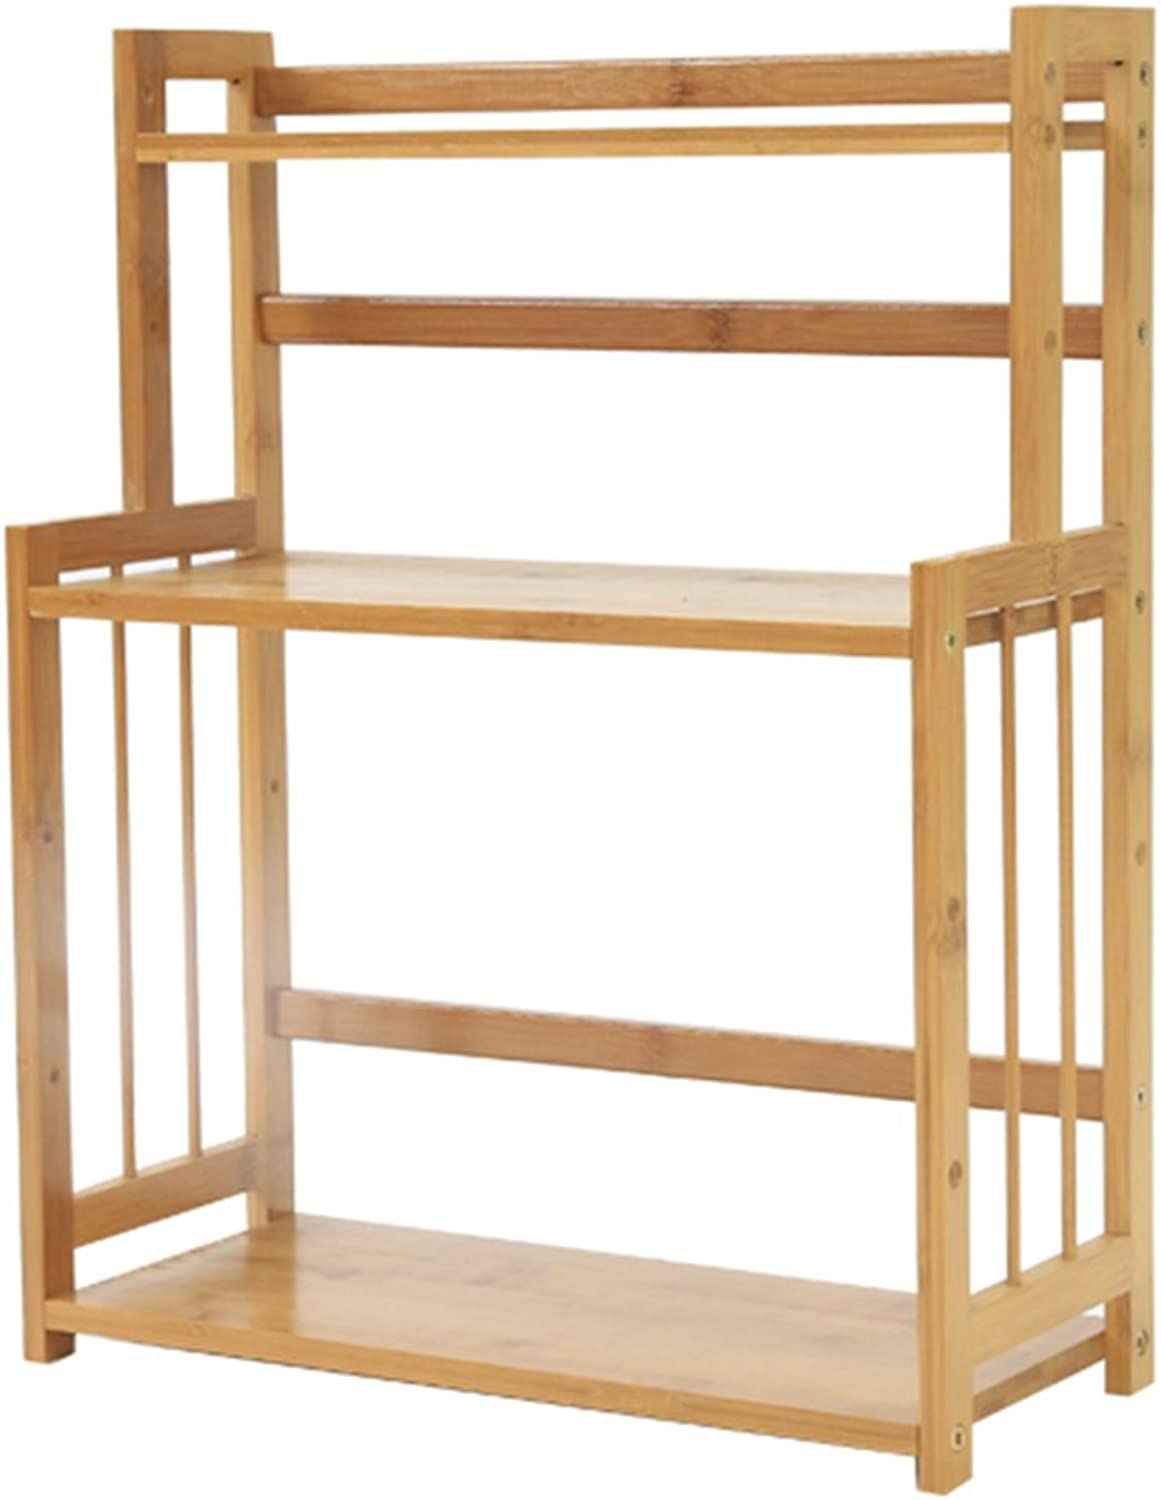 3 Tier Countertop Worktop for Kitchen Spice Rack Spice Holder Counter Top Bamboo Shelf, 41  18  48cm